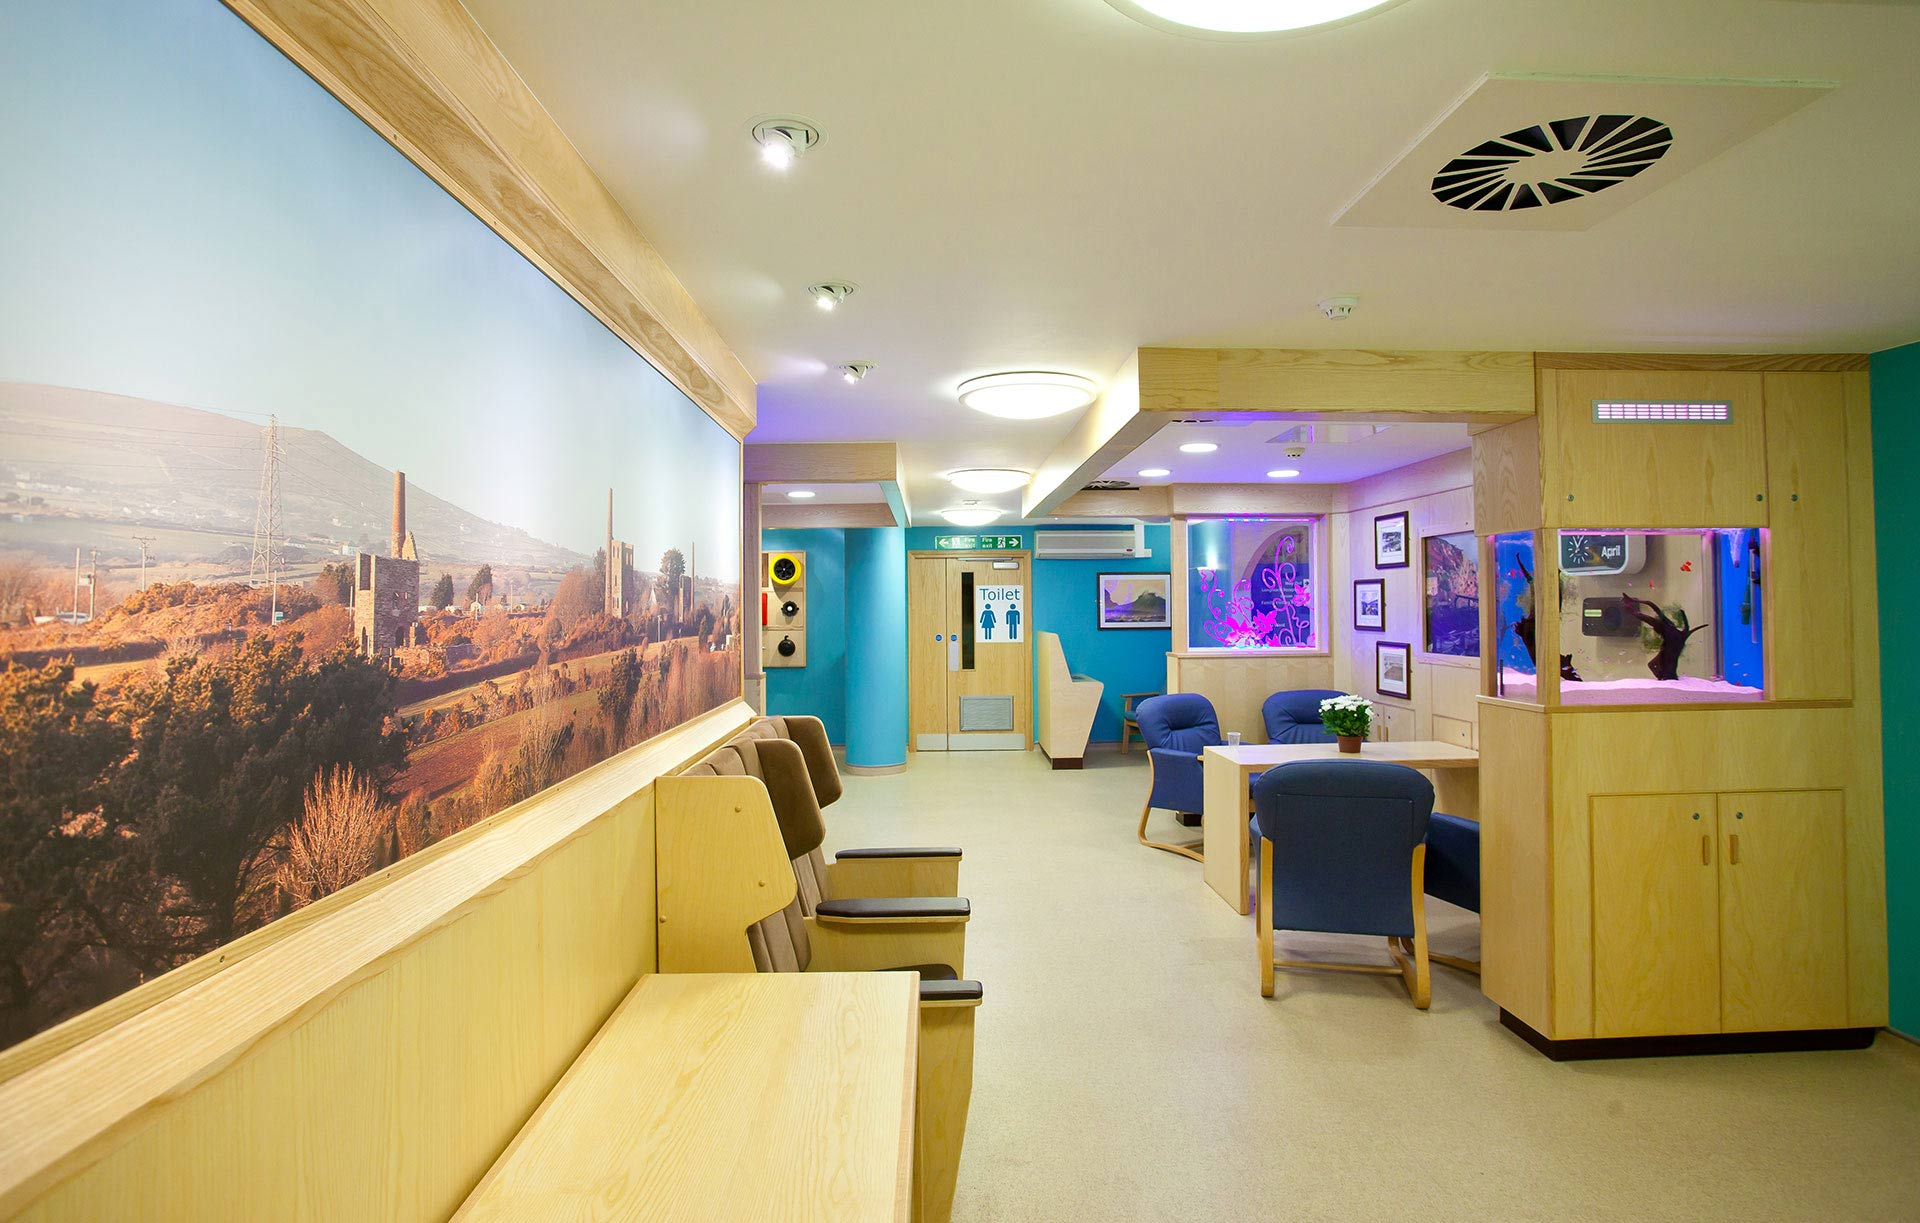 Large panels of local landscapes in dementia ward designed by Boex